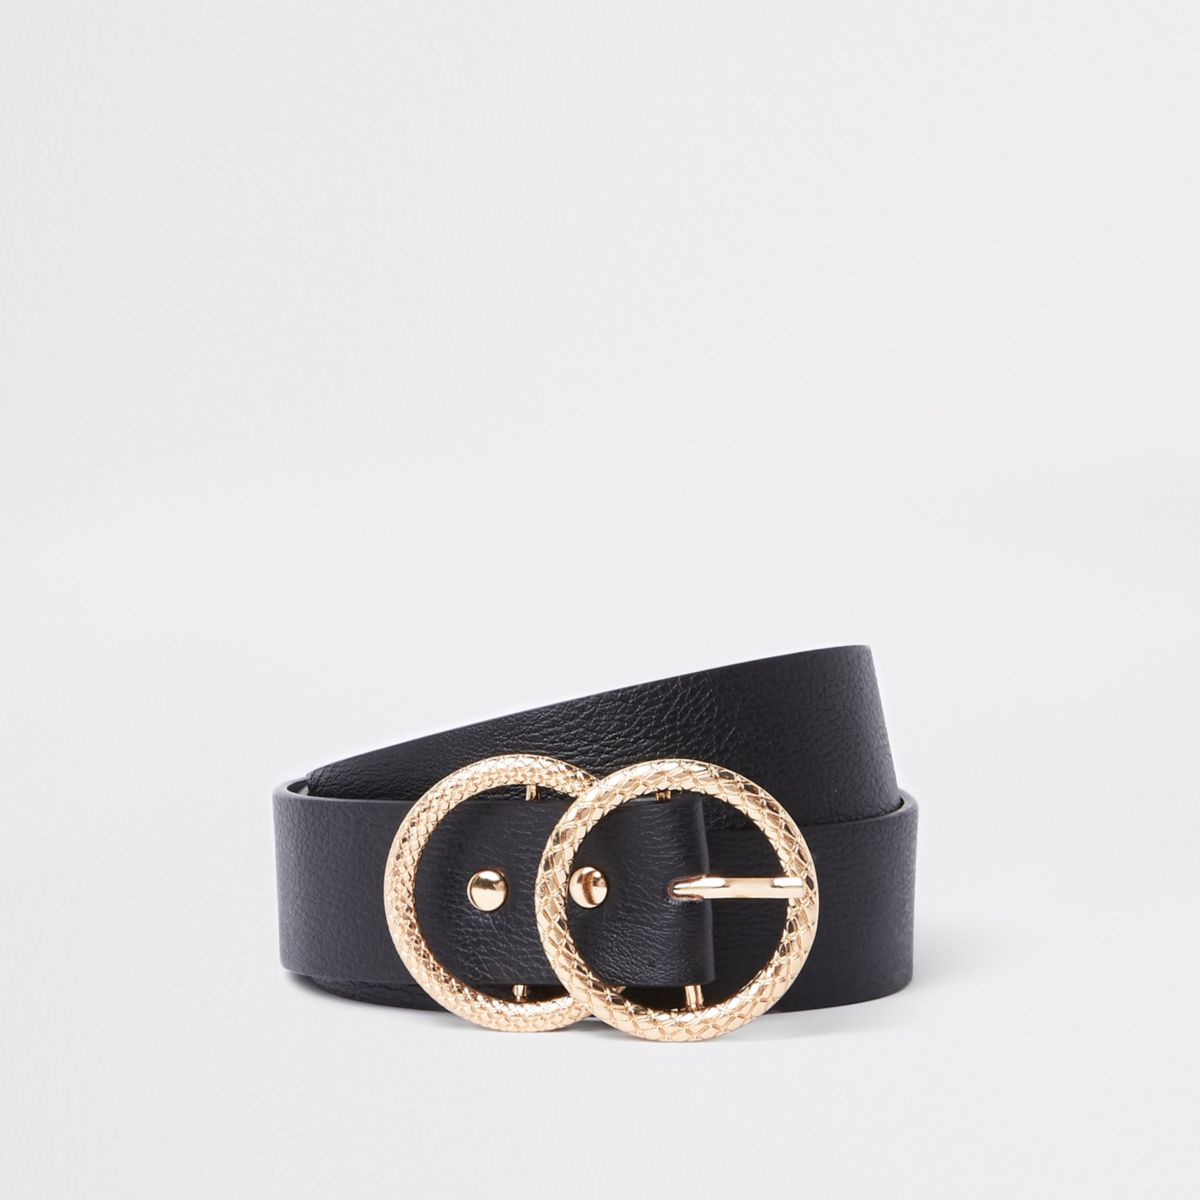 Black textured gold tone double ring belt